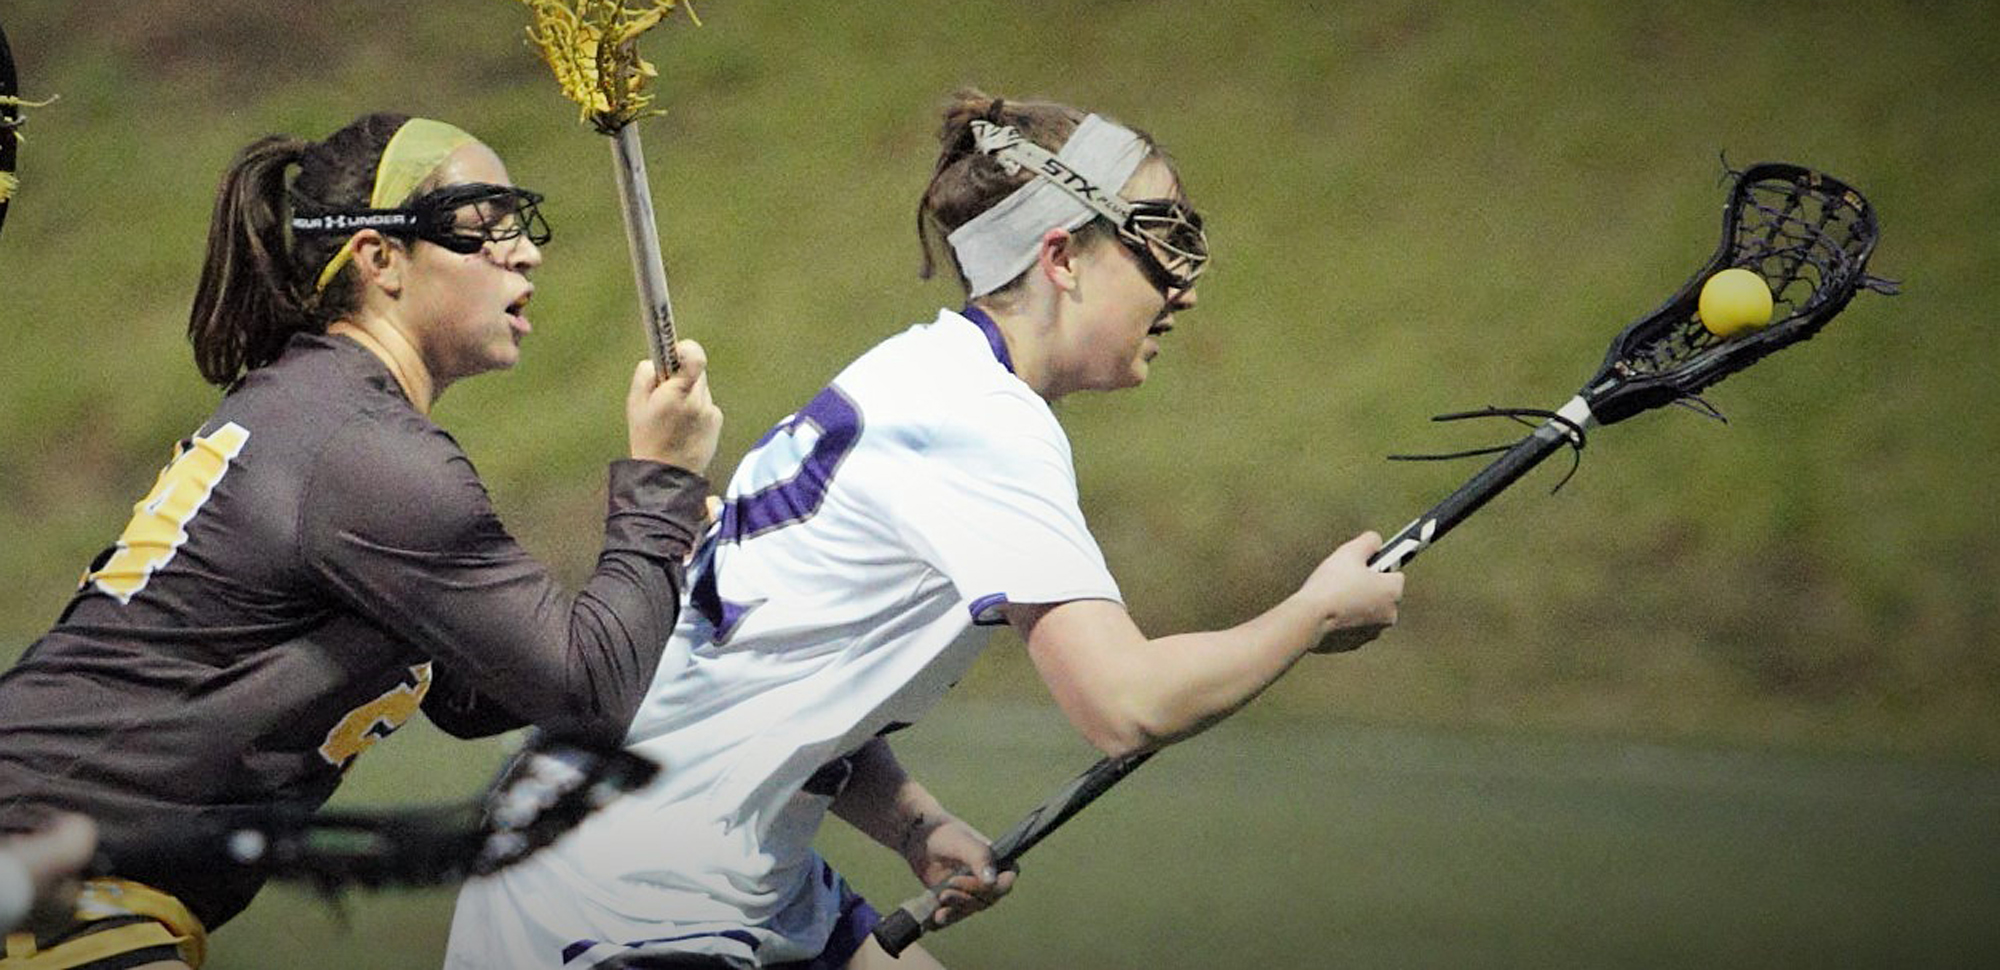 Jill Henson posted game-highs of four goals and five caused turnovers to go along with three ground balls on Wednesday at Oneonta.